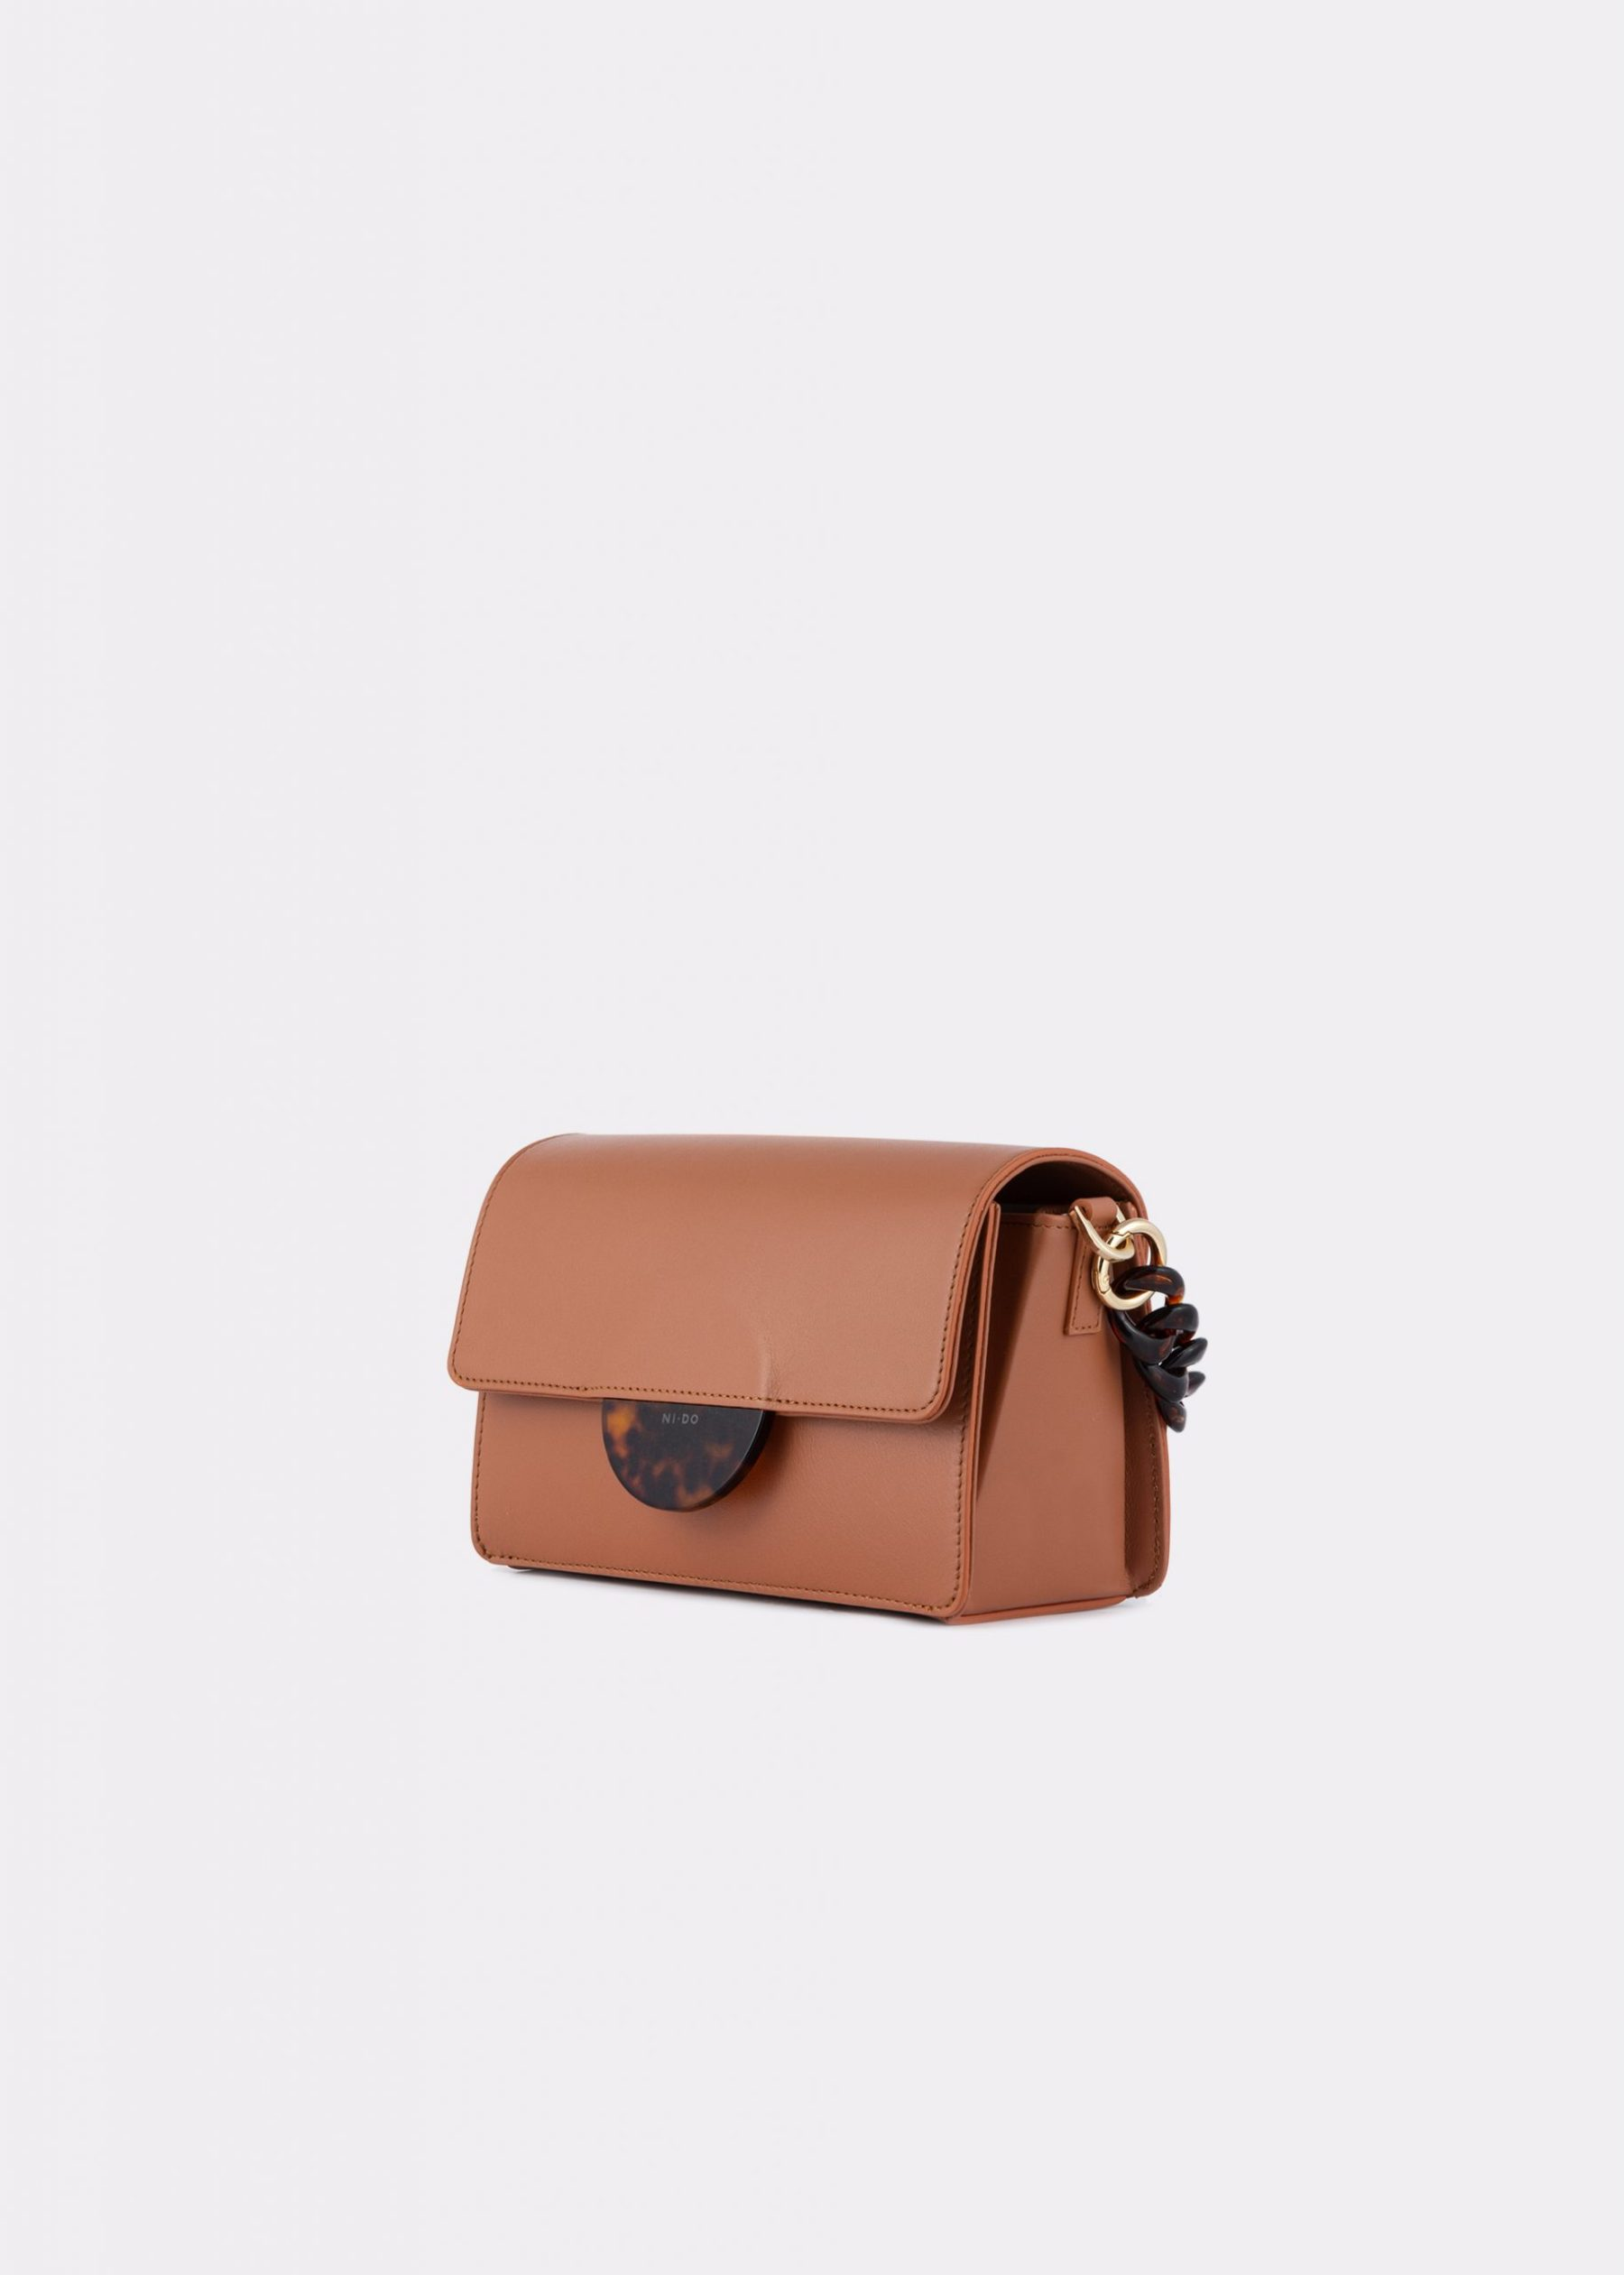 NIDO Cuore Mini bag Bisquit side view